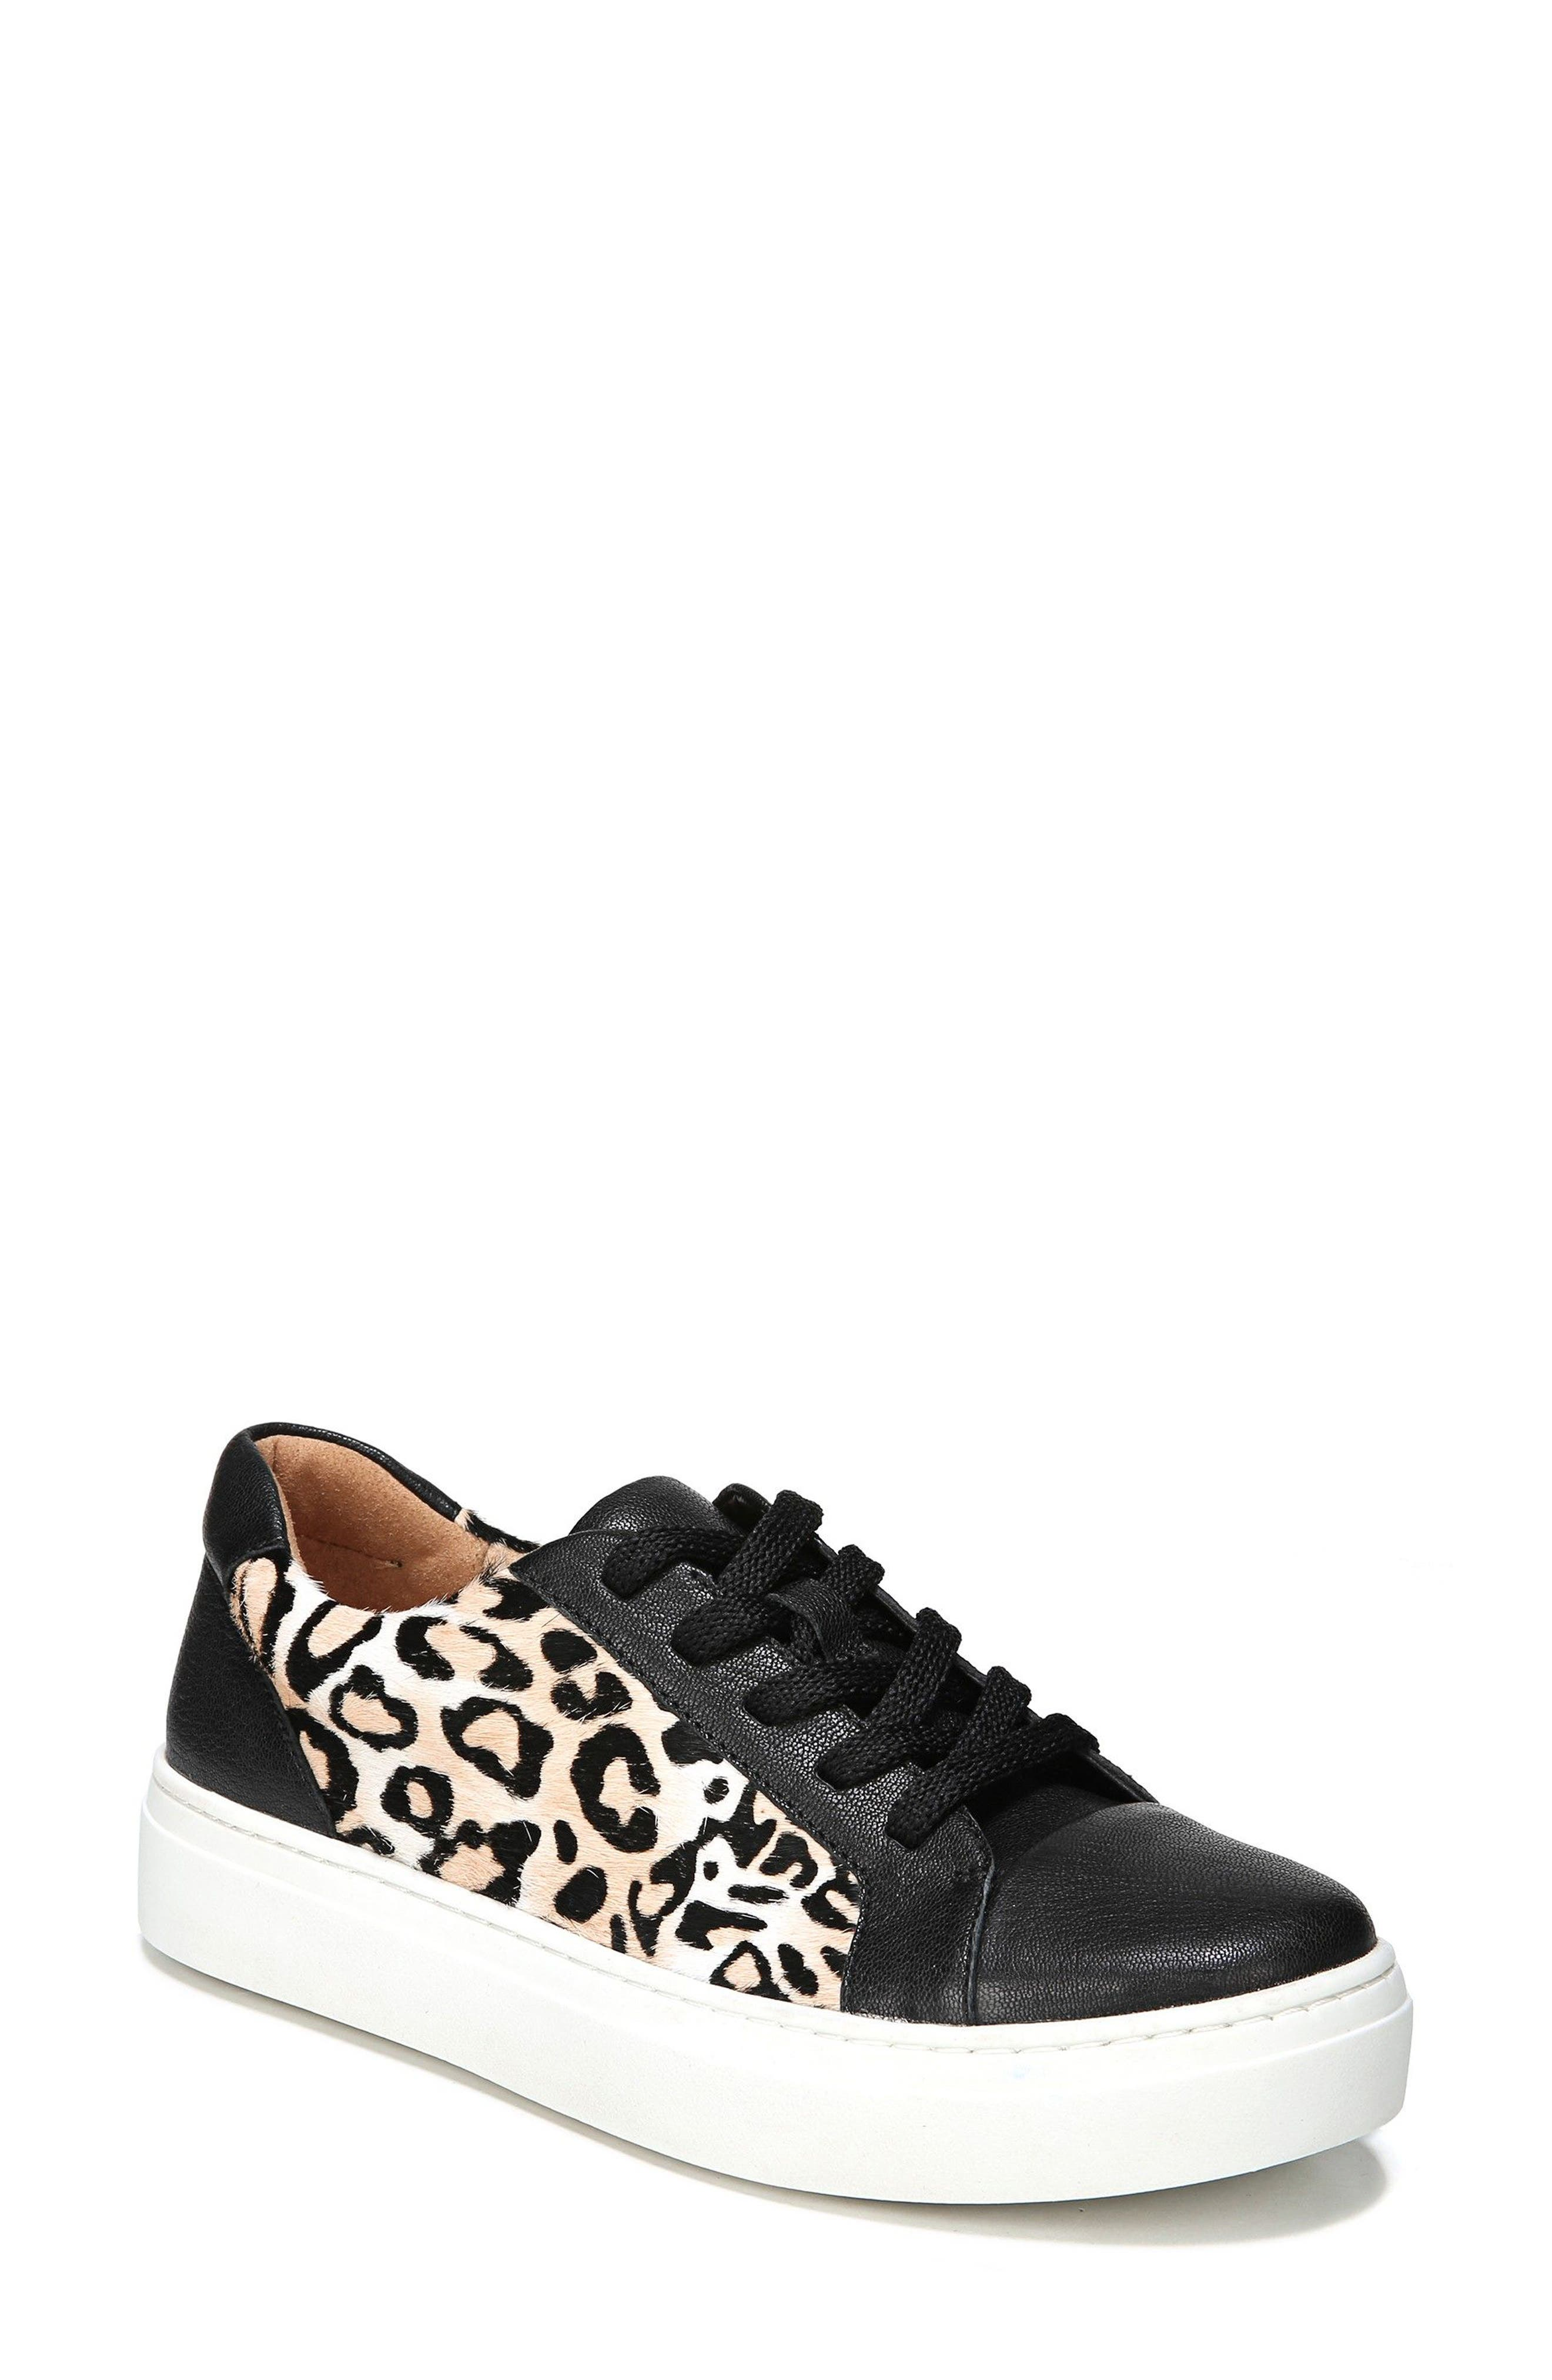 Alternate Image 1 Selected - Naturalizer Cairo Sneaker (Women)